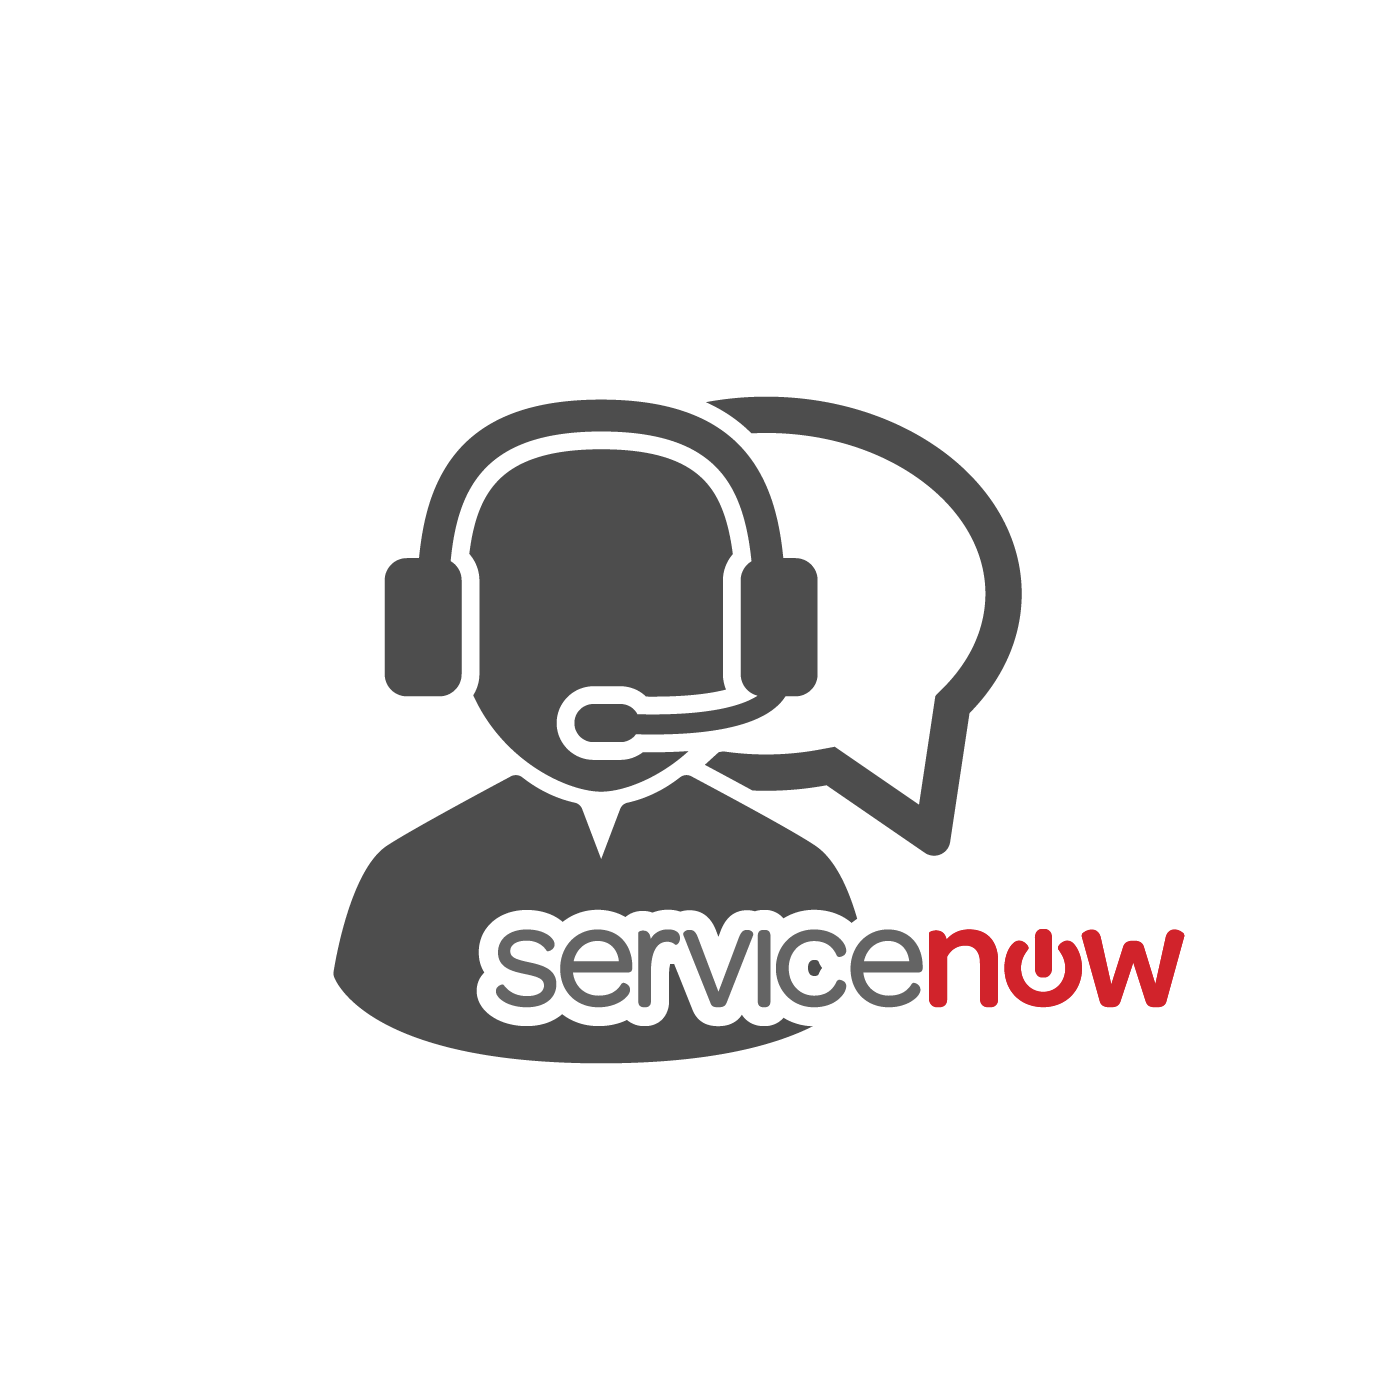 There It Is How To Unlock The Value Of Your It Support Data With Servicenow